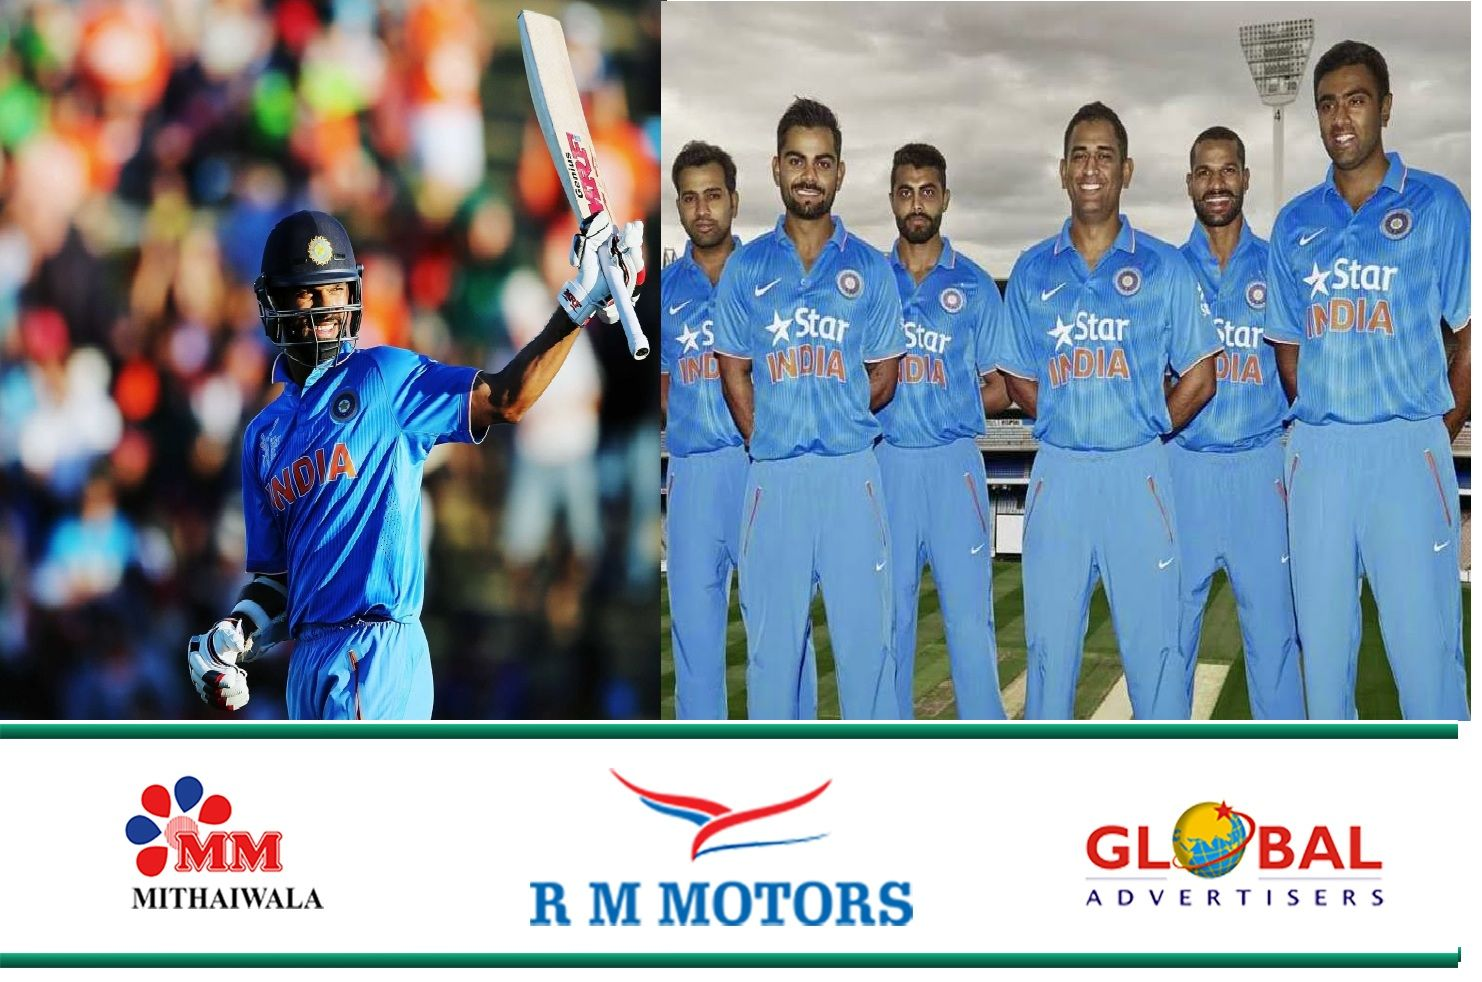 India confirm their position at the top of Pool B with their fifth victory.  #Congratulations to team #India for their #Victory against #Ireland !  Cannot miss out Shikhar Dhawan 's century (100 runs from 85 balls).  #WorldCup2015 #CWC15 #Cricket #TeamIndia #IndianCricketTeam #BleedBlue